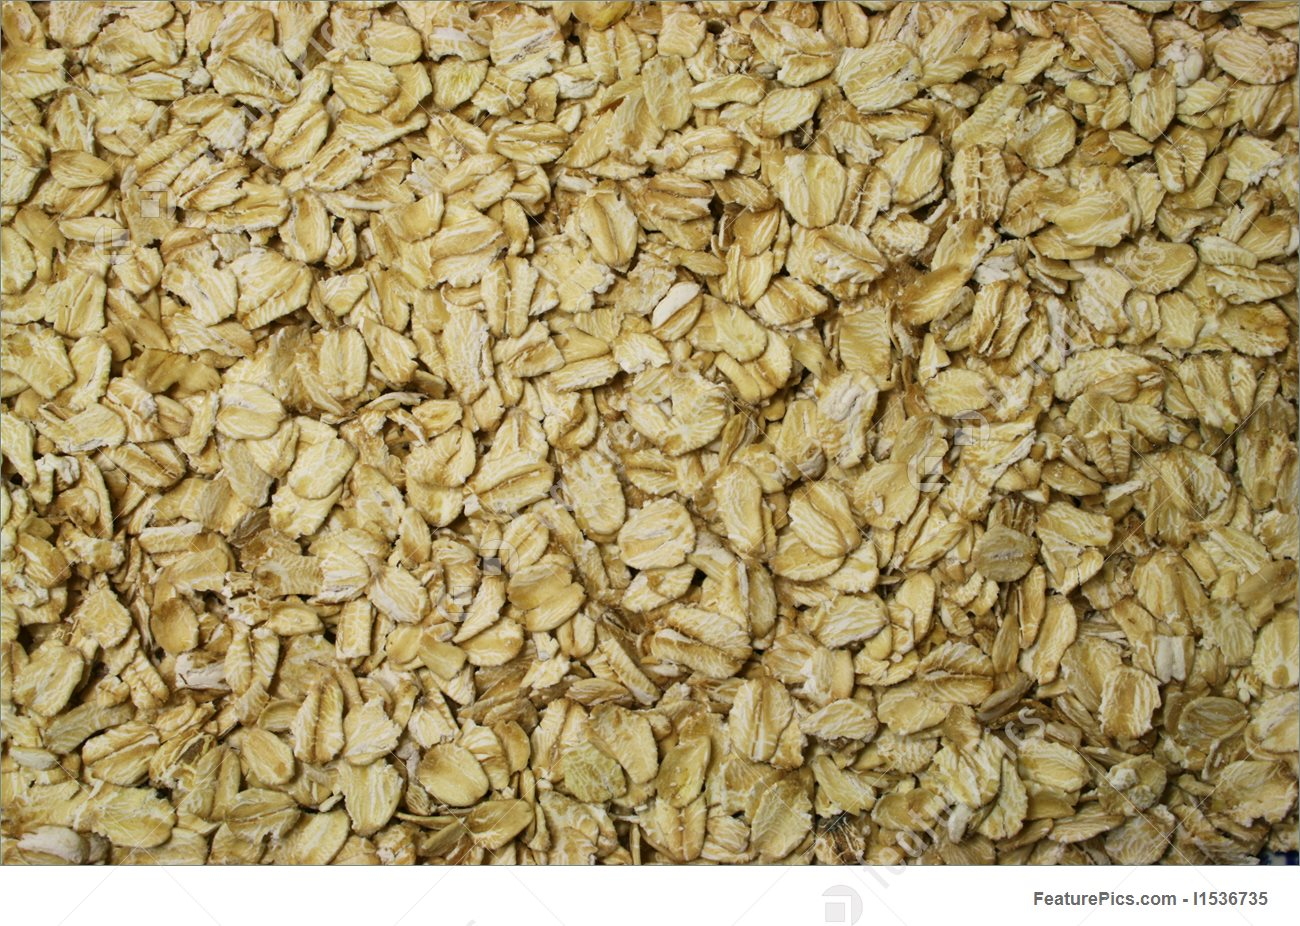 Dry Oatmeal Background Stock Image I1536735 at FeaturePics 1300x926